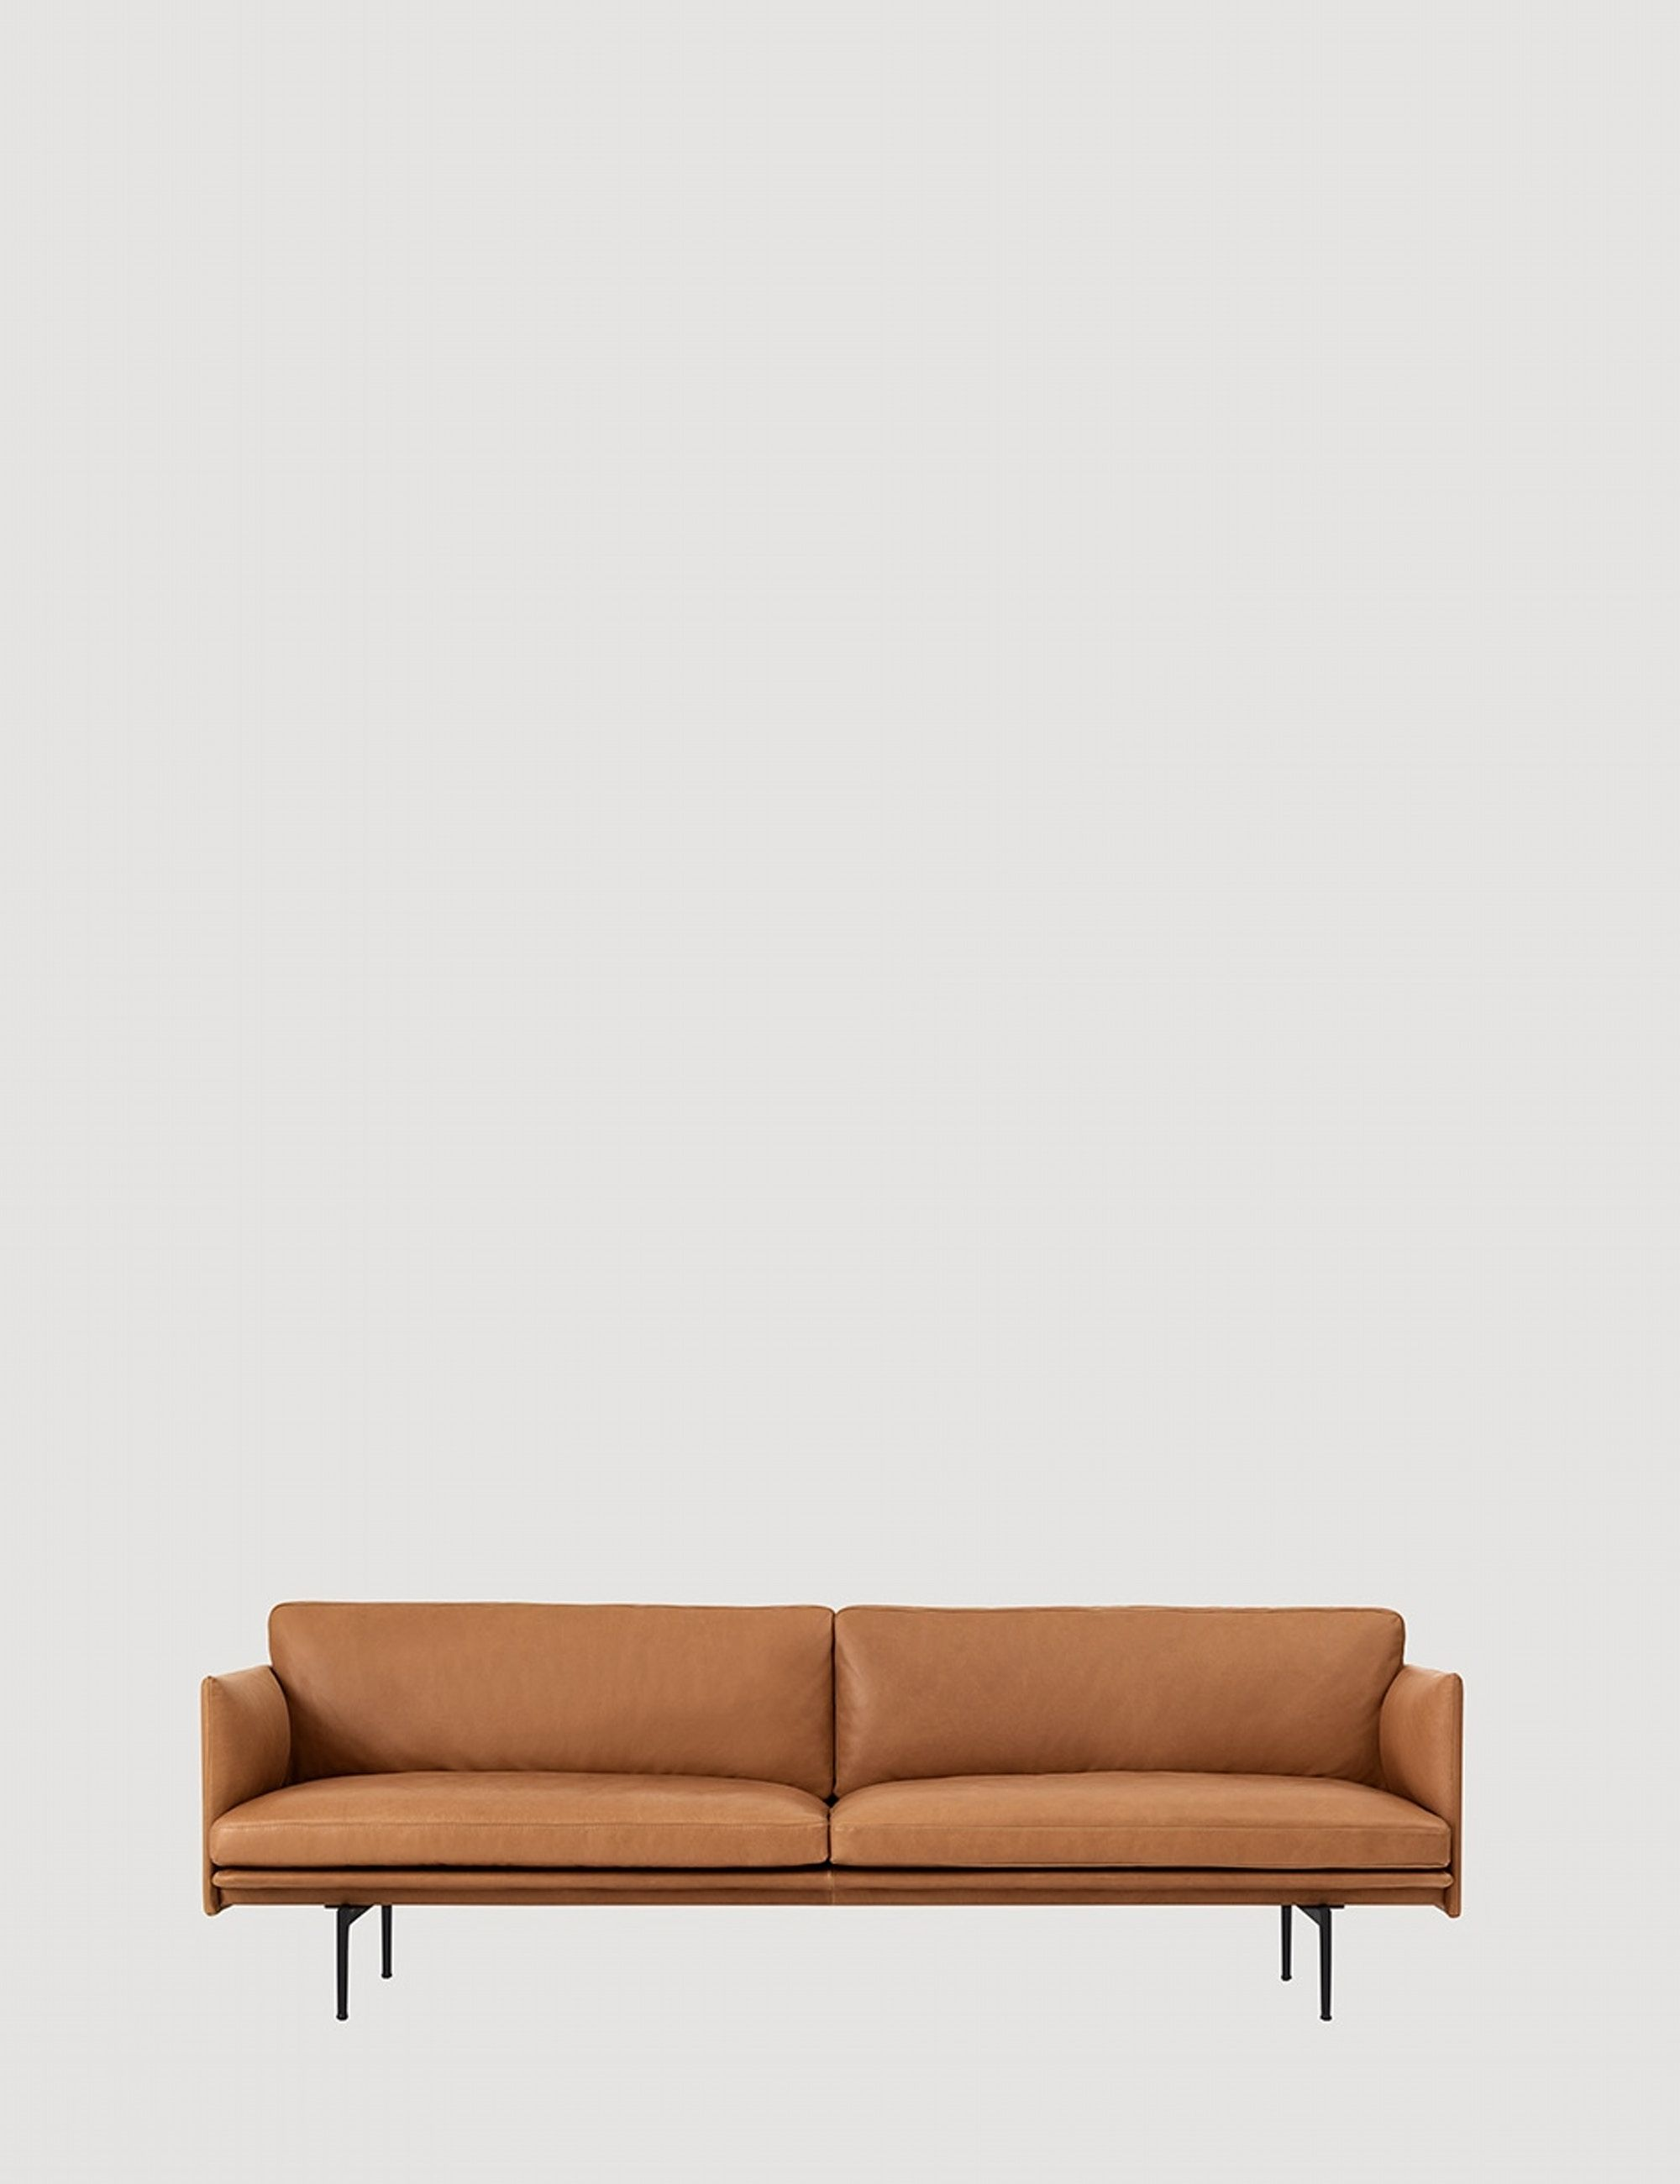 Gentil Apartment Couches For Small Living Spaces   Small Space Furniture